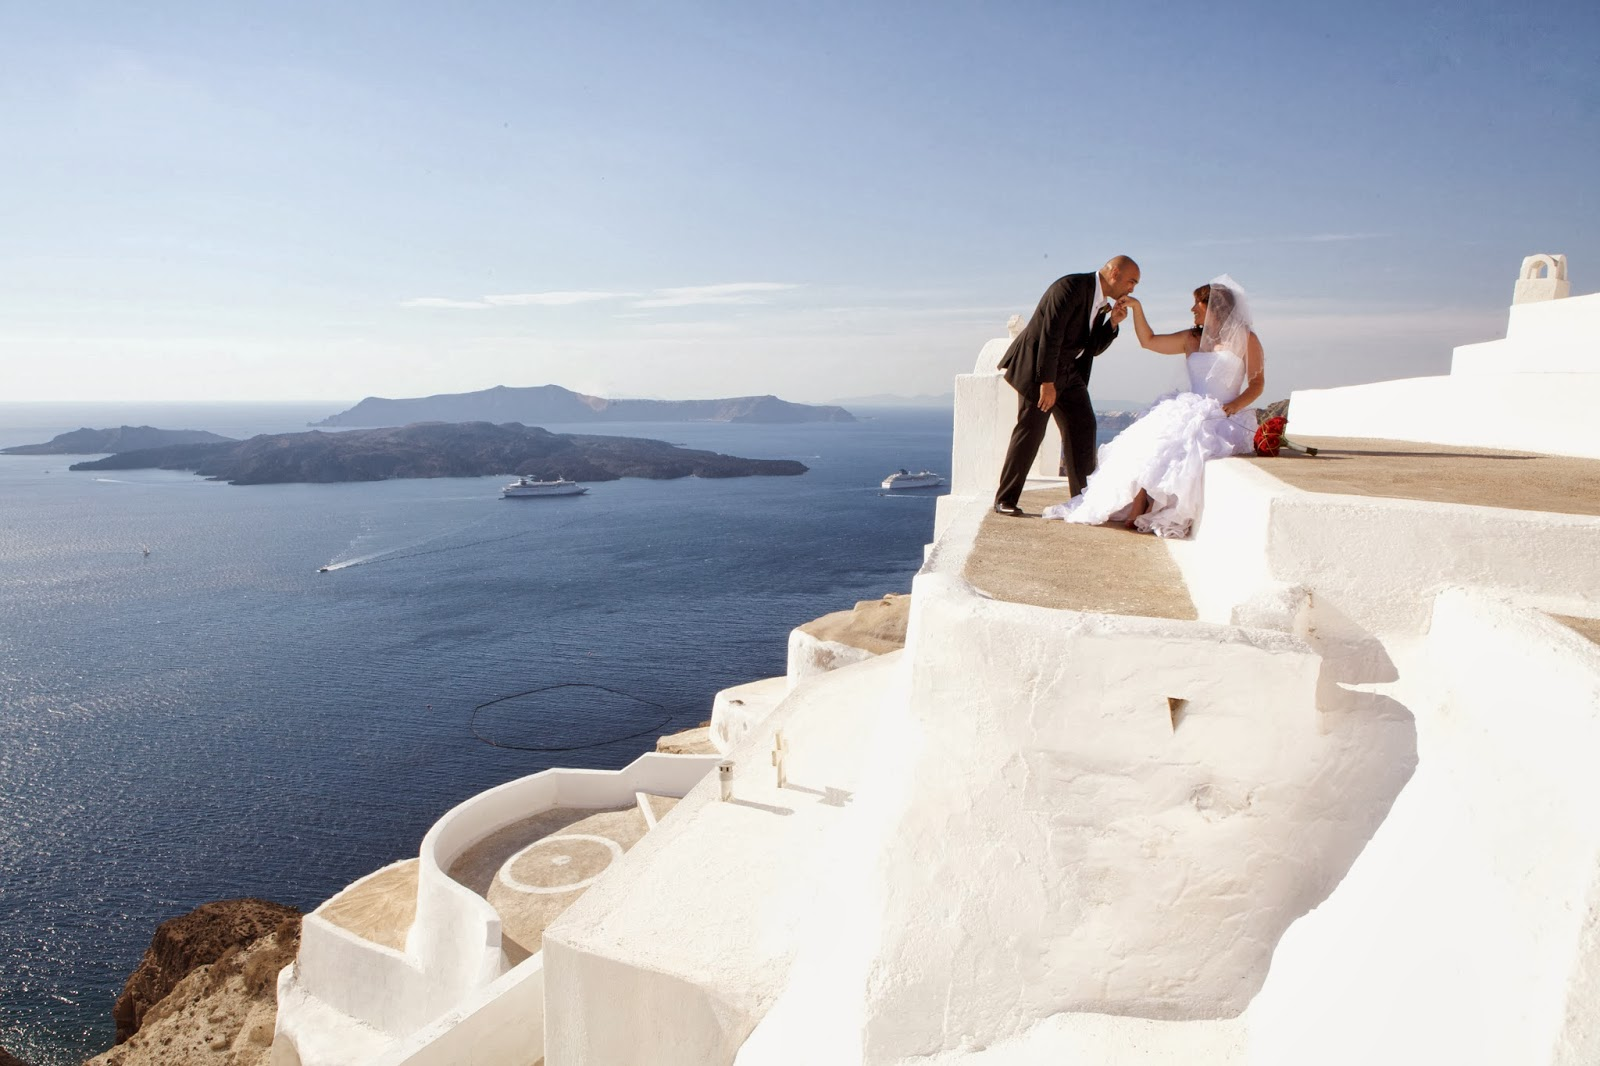 3d7e5637862 A wedding in Santorini is a dream for a lot of couples - Santorini is among  the 10 top destination places for a wedding in the world.